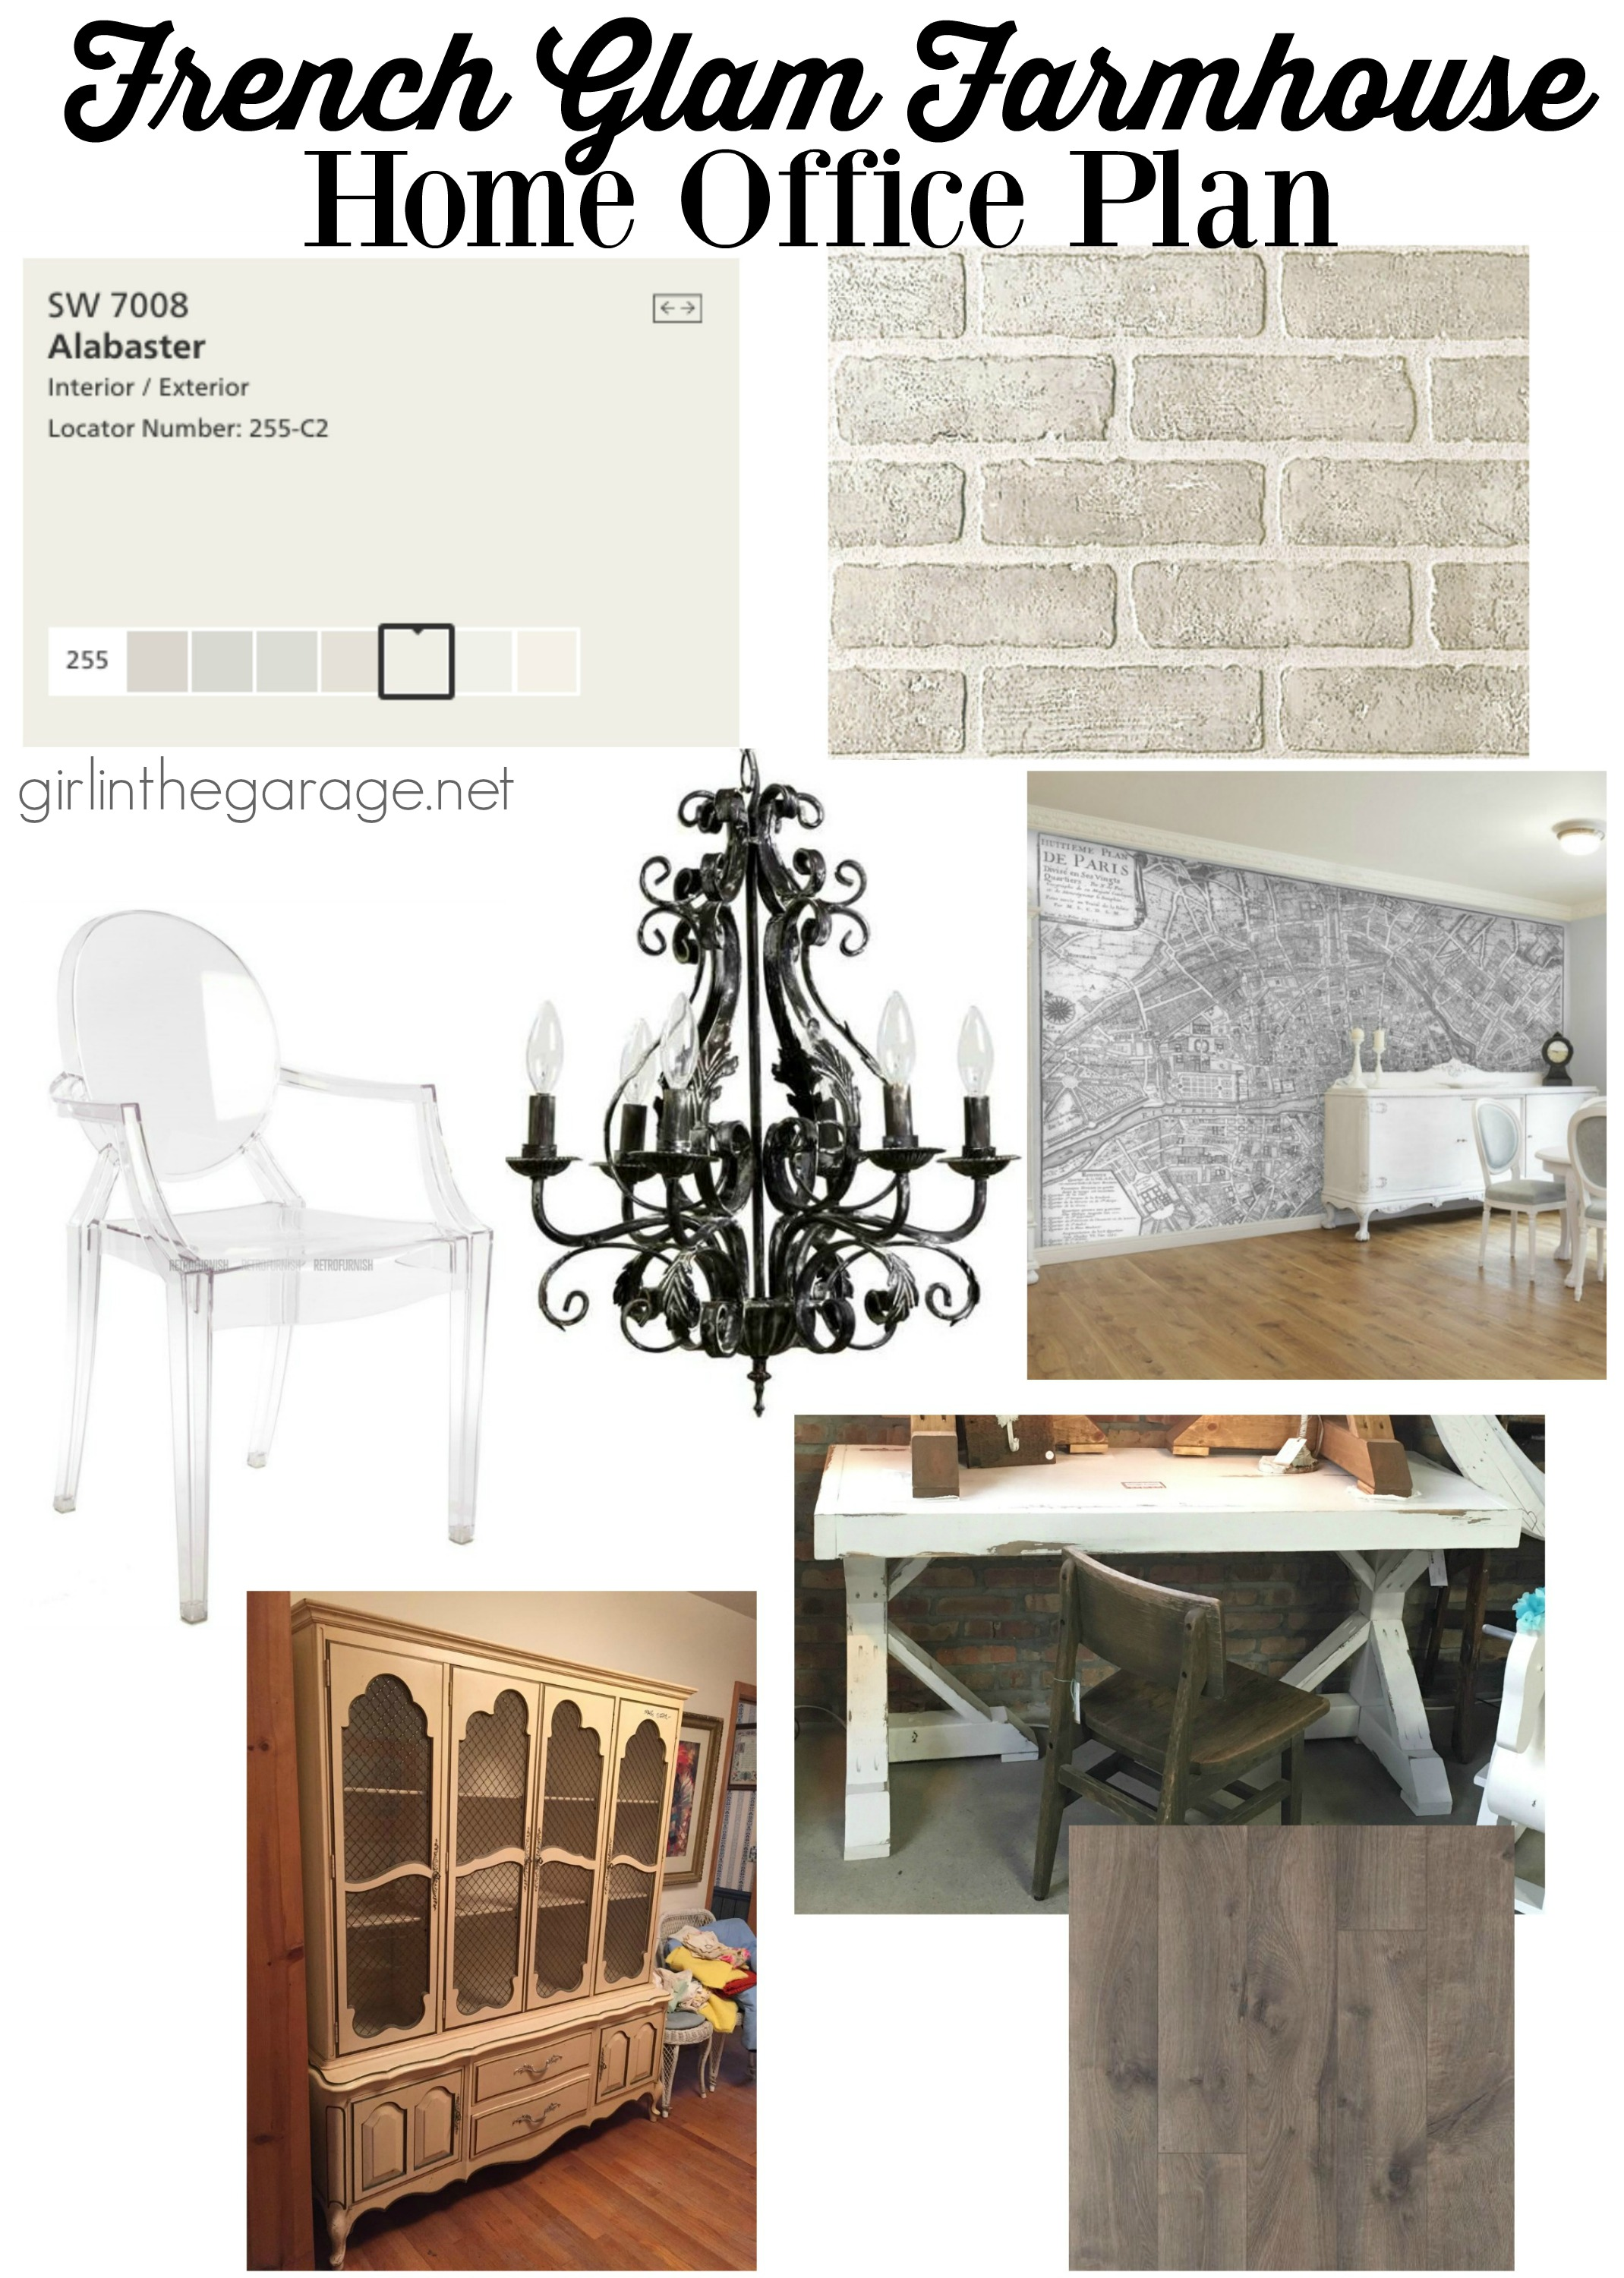 French Glam Farmhouse Home Office Design Plan - Girl in the Garage